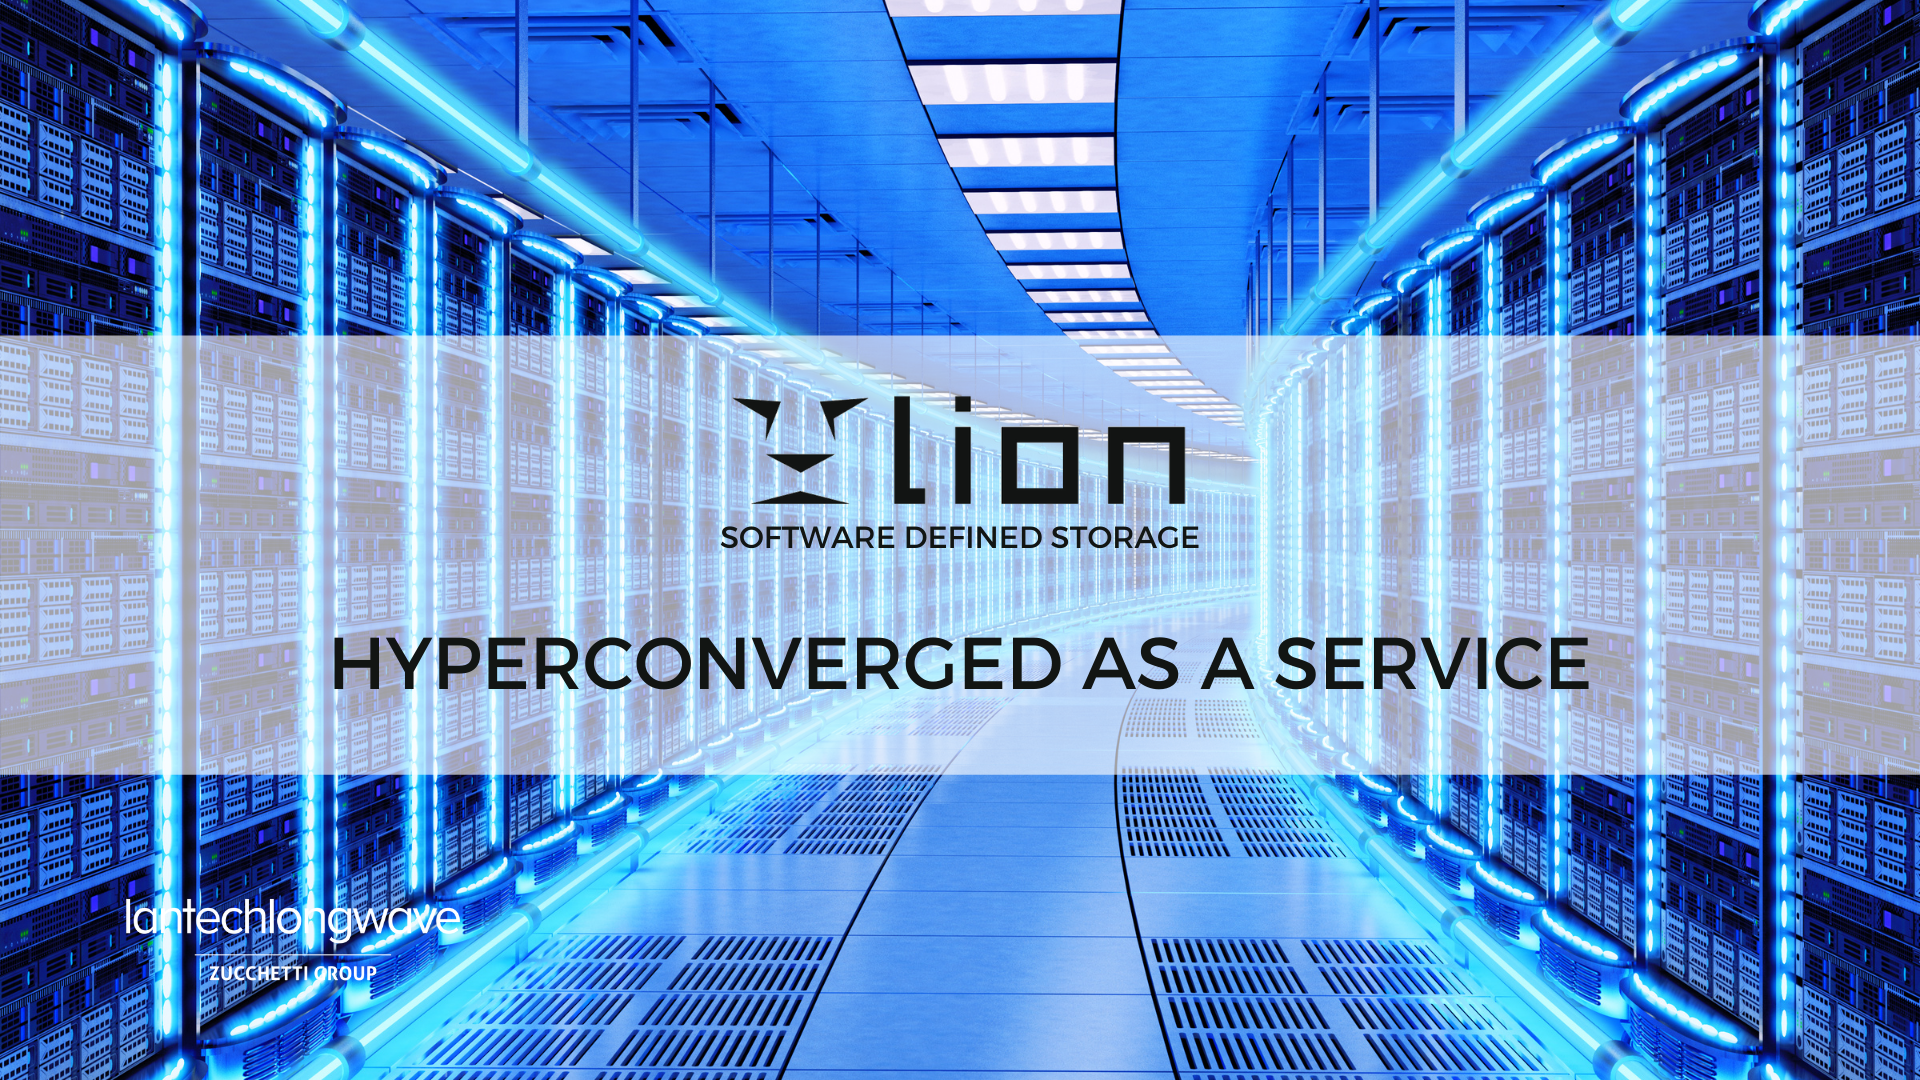 LION SDS: Hyperconverged as a Service